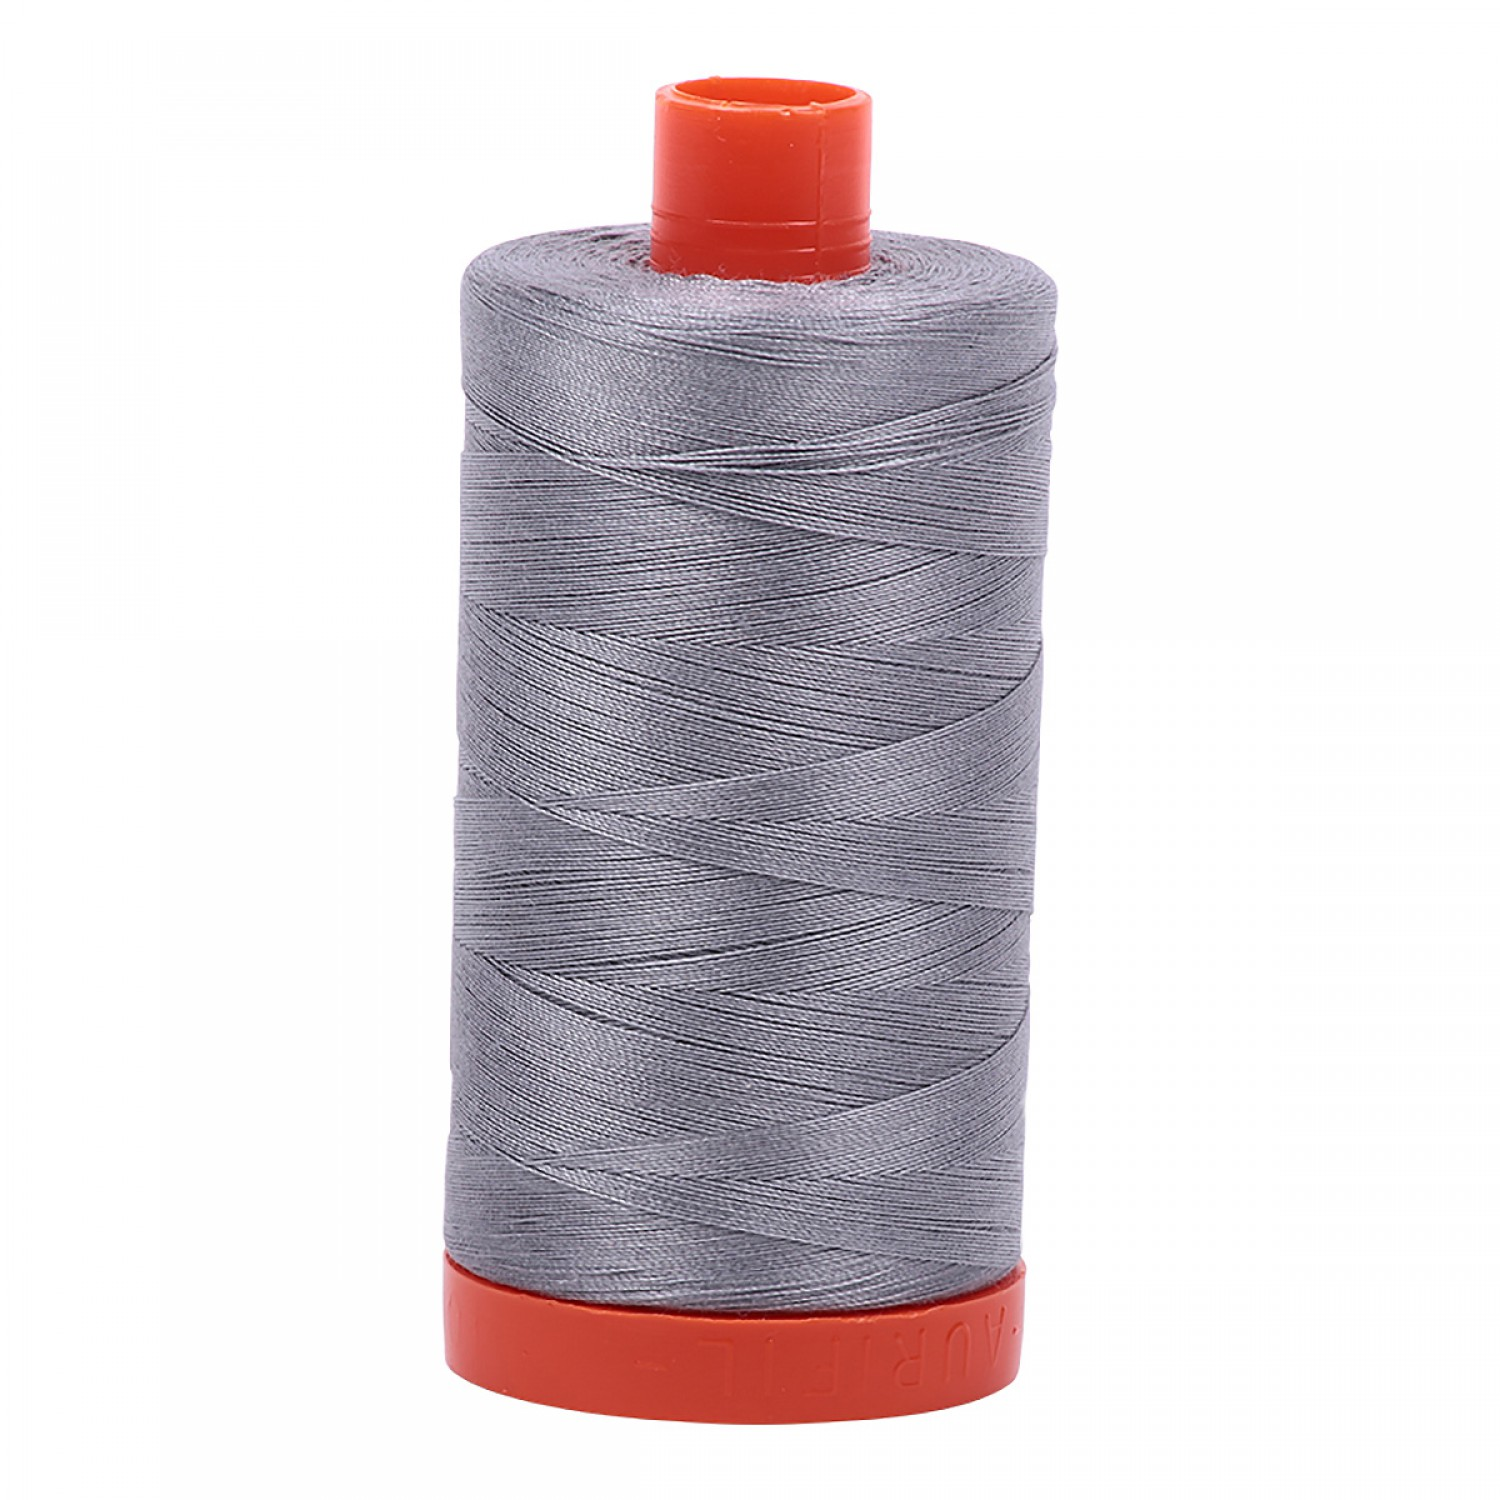 Aurifil Mako 50 wt Cotton Thread - 1422 yds - Grey (2605)